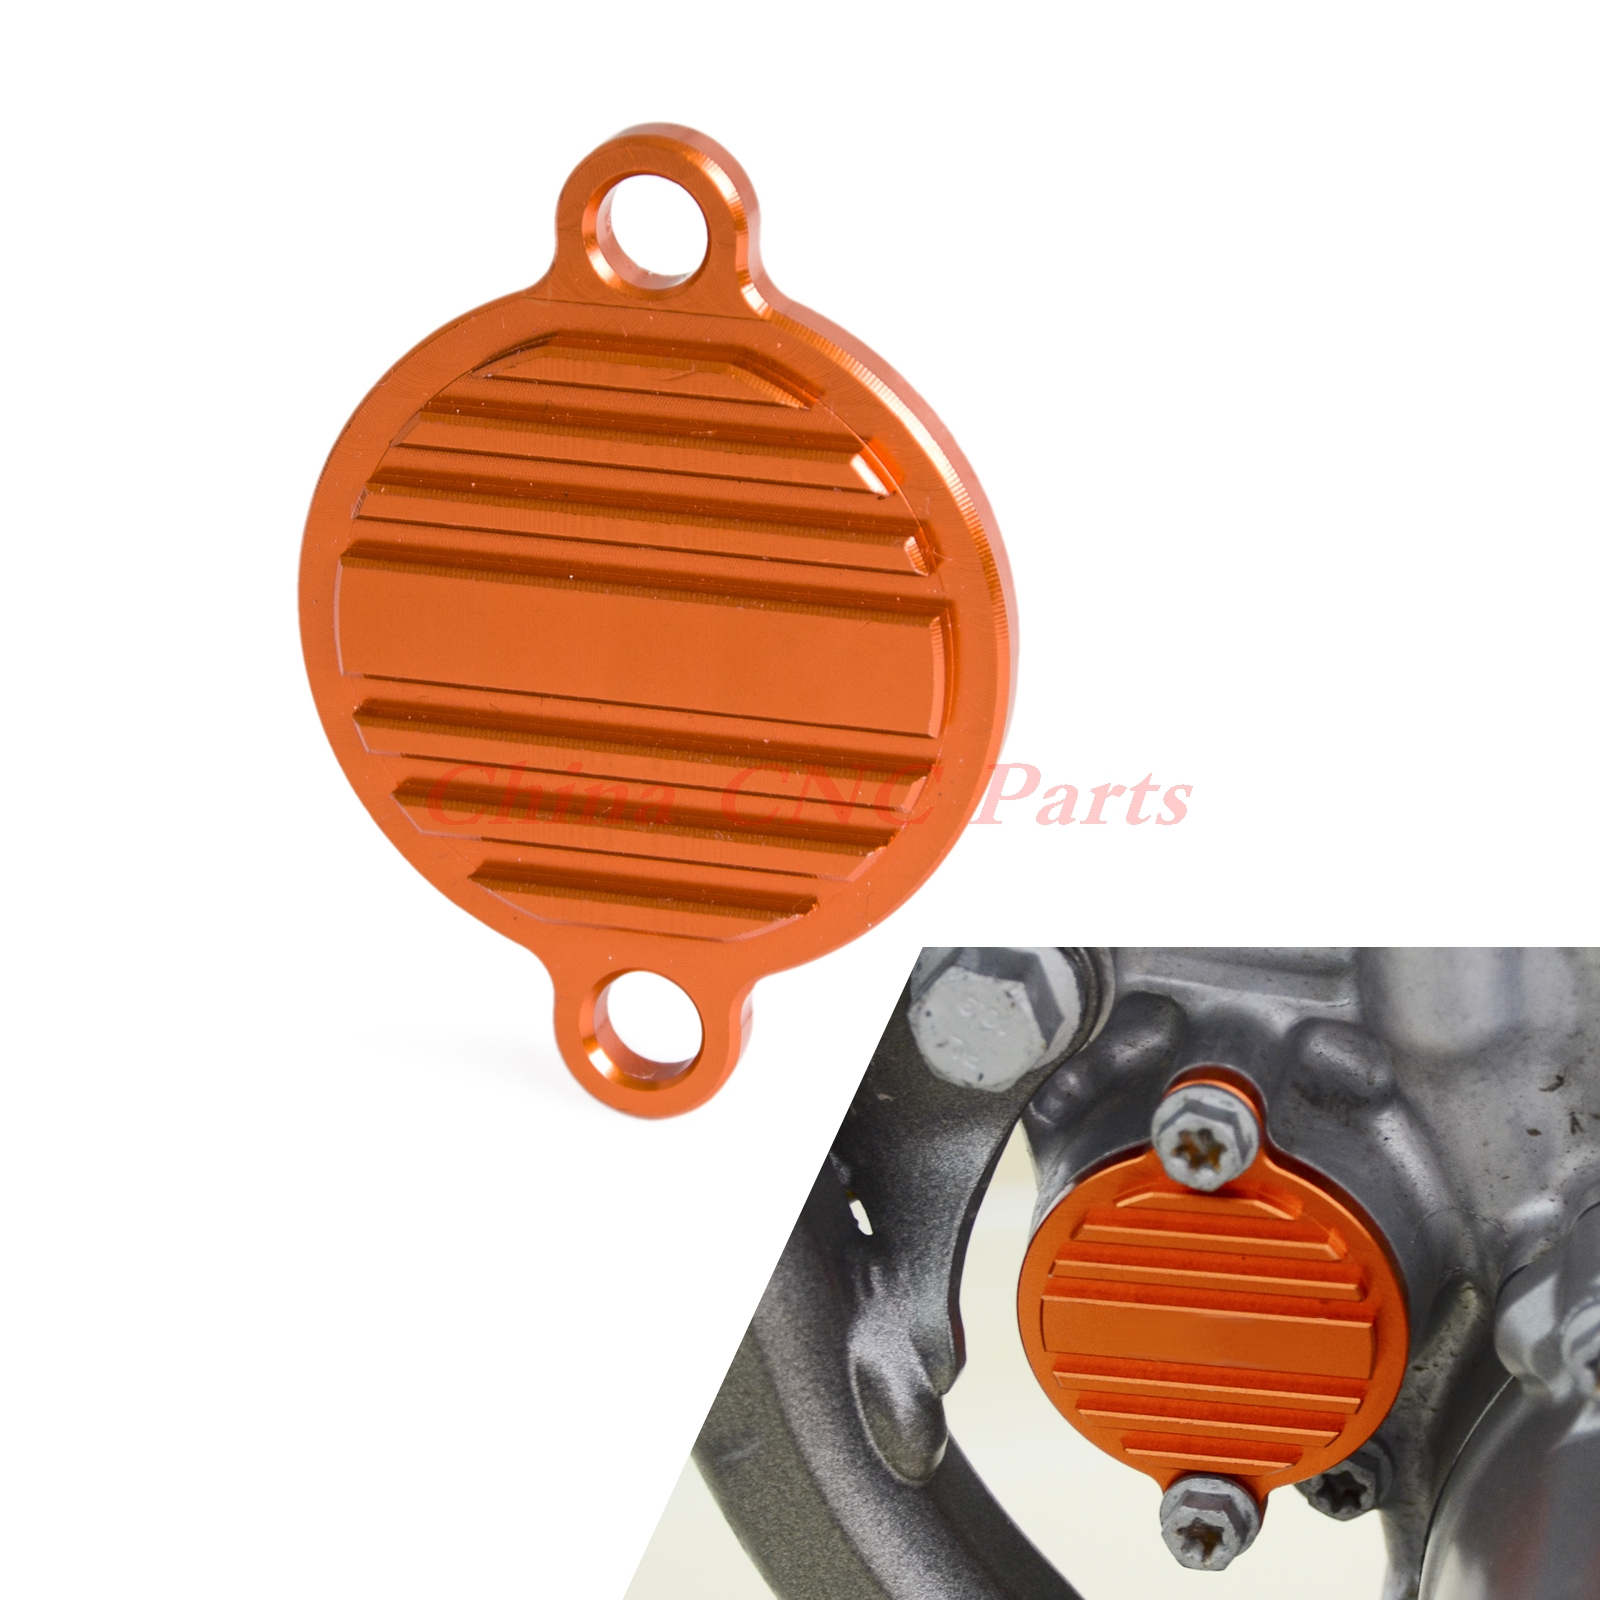 Nicecnc New Billet Oil Filter Cover Fits For Ktm 250 350 450 Wire Schematic Smr 400 530 Exc F Sx Sxs Six Days Freeride